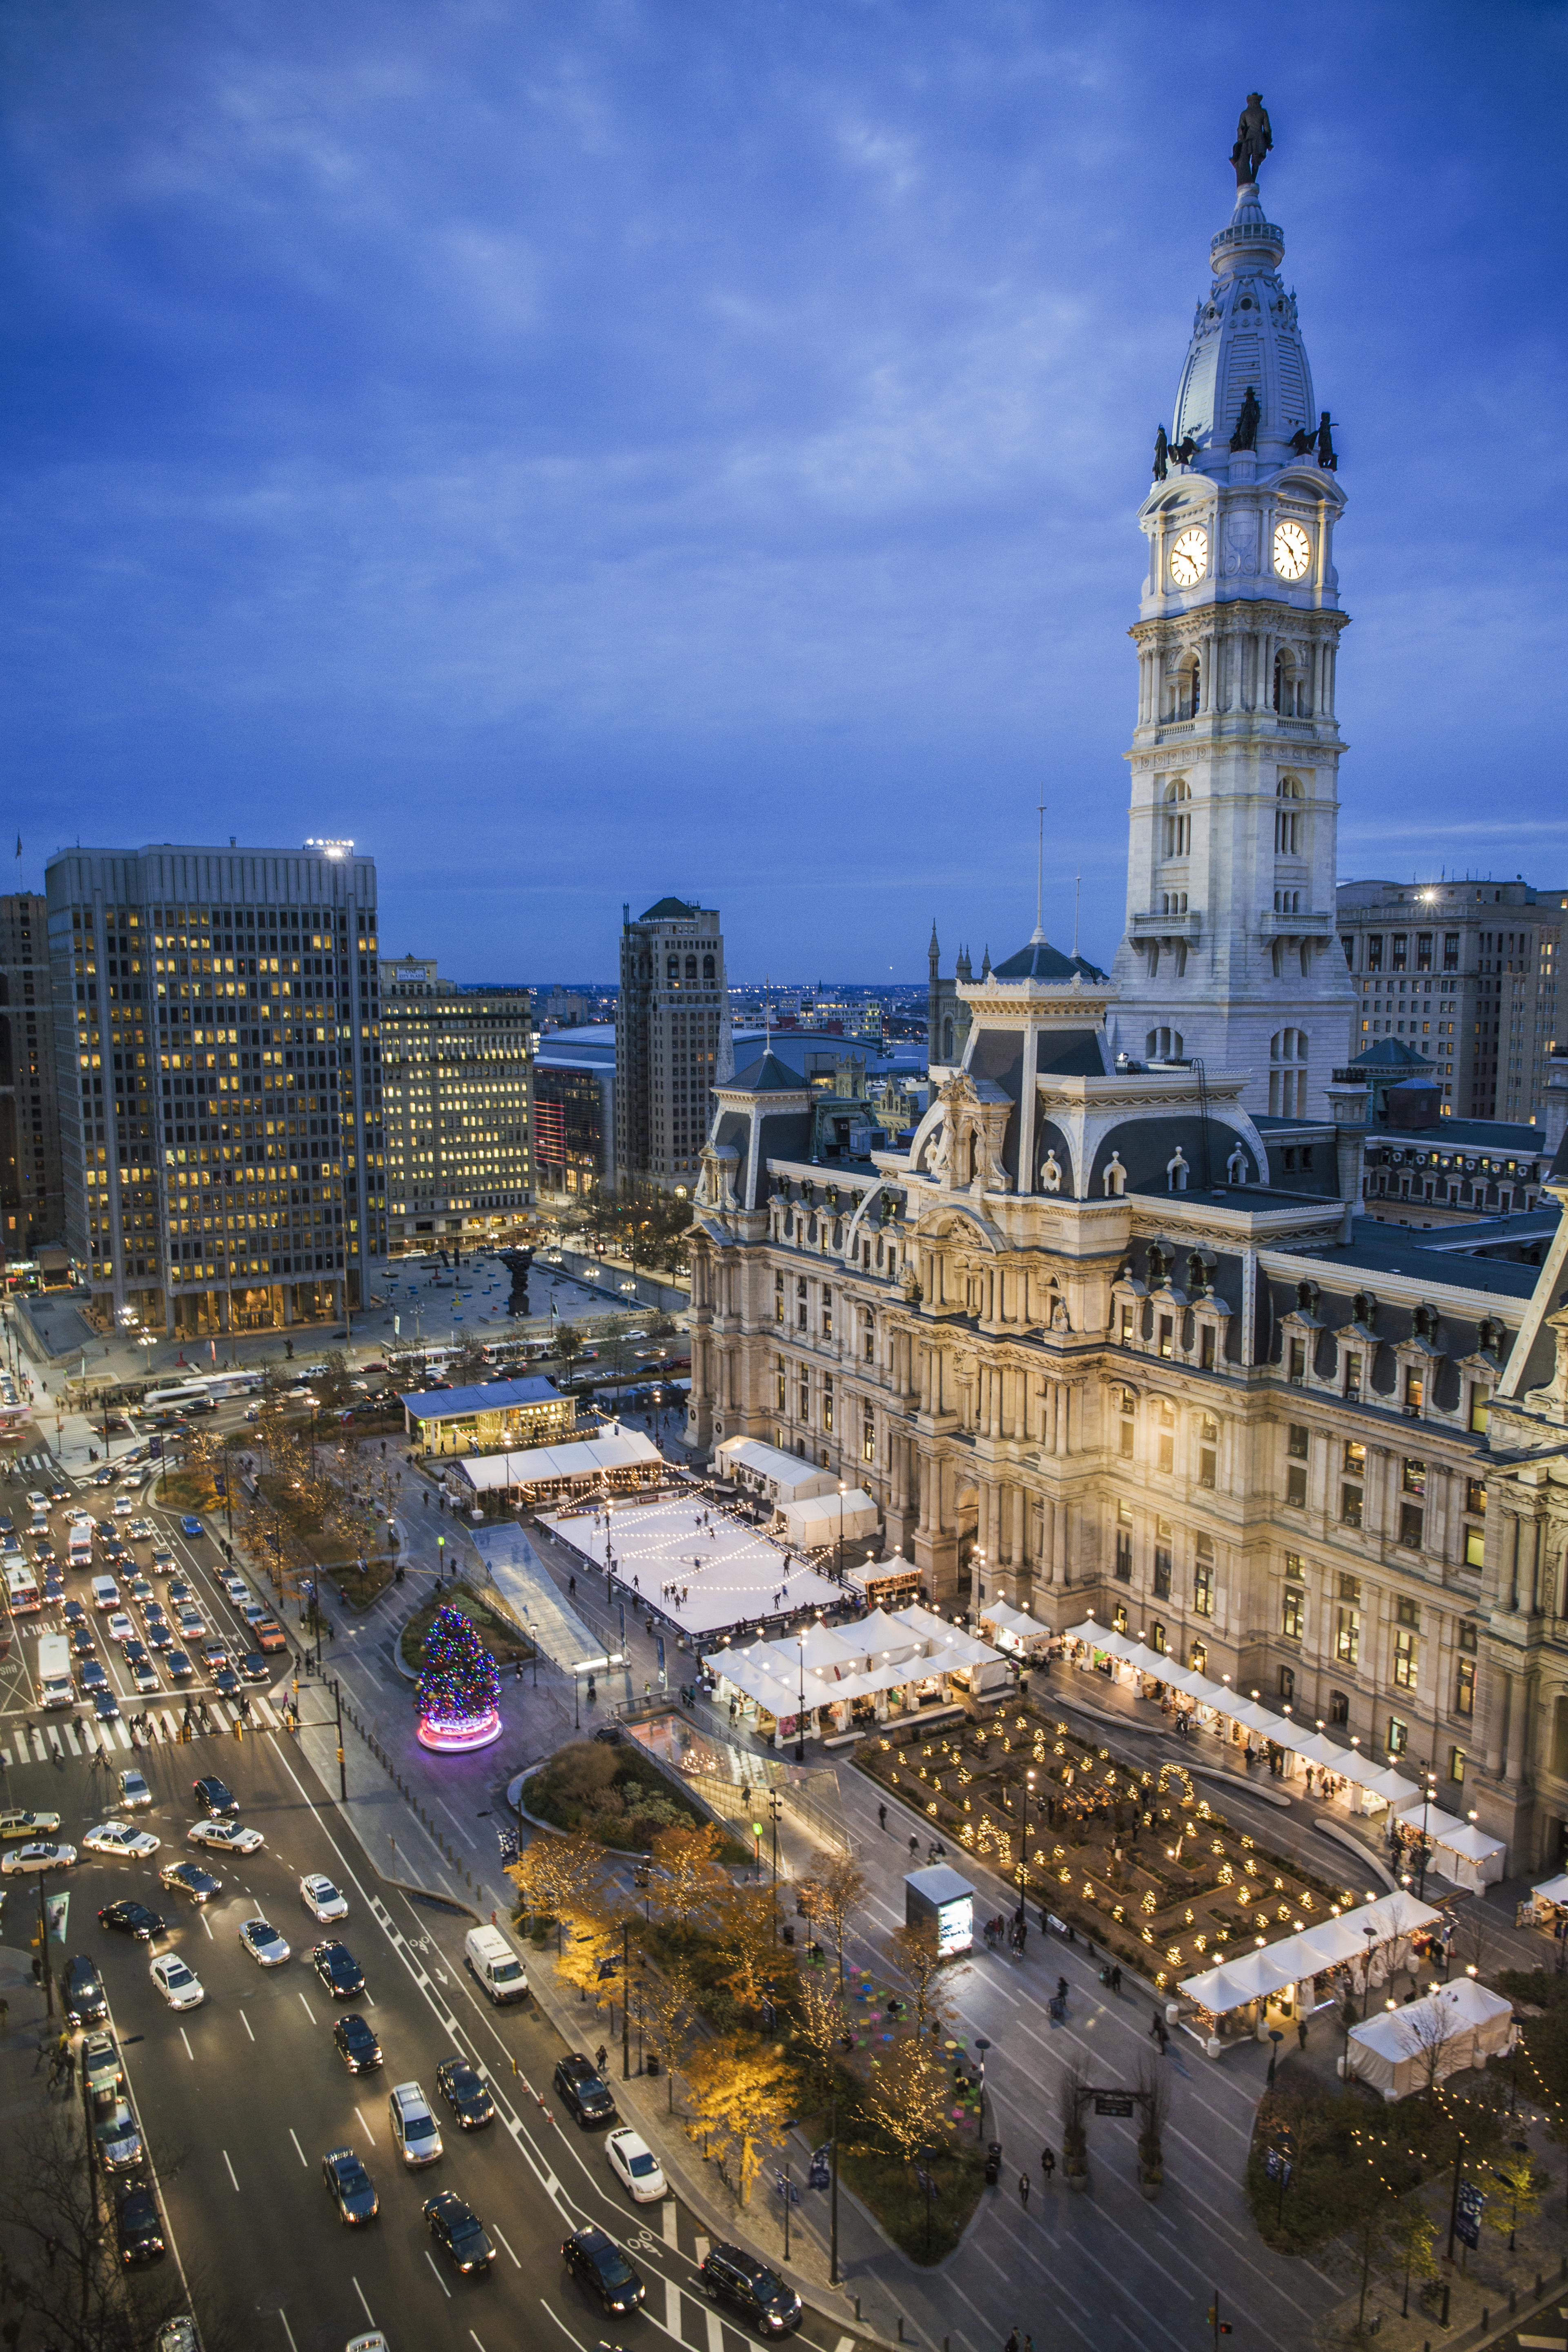 The exterior of Philadelphia City Hall. There is an ice rink in front of the building where people are ice skating.